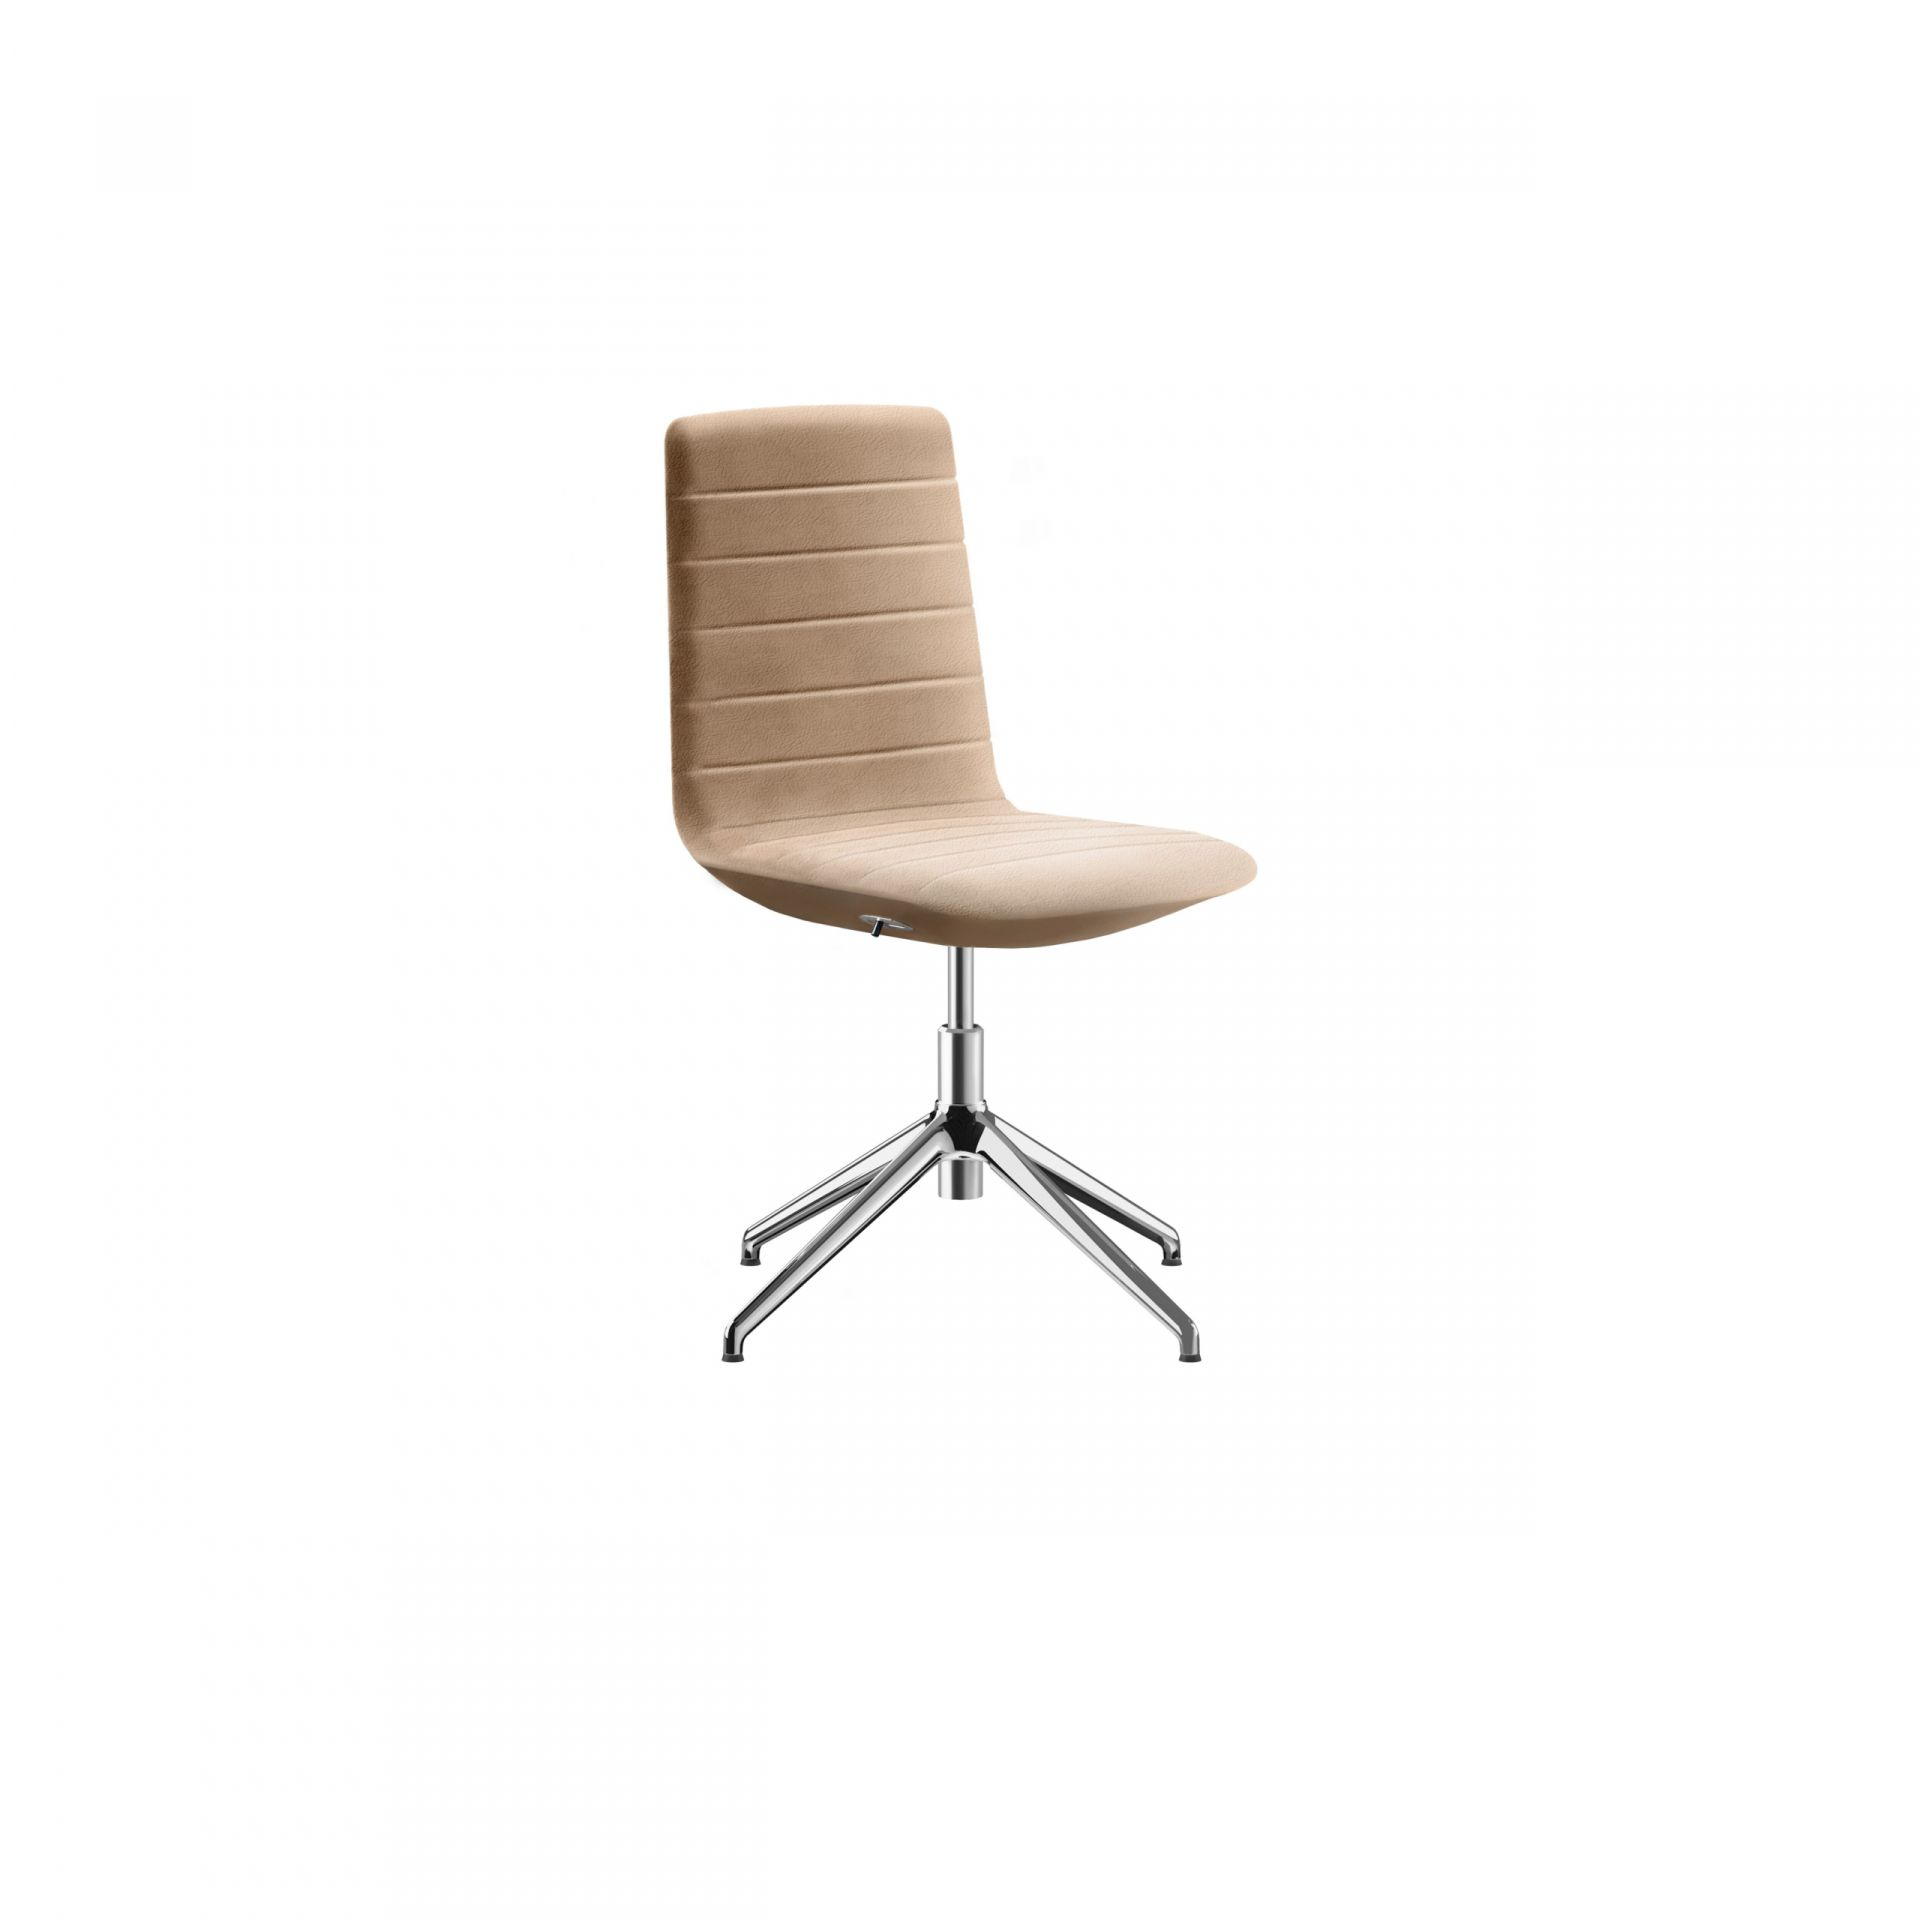 Favor Chair with swivel base product image 3